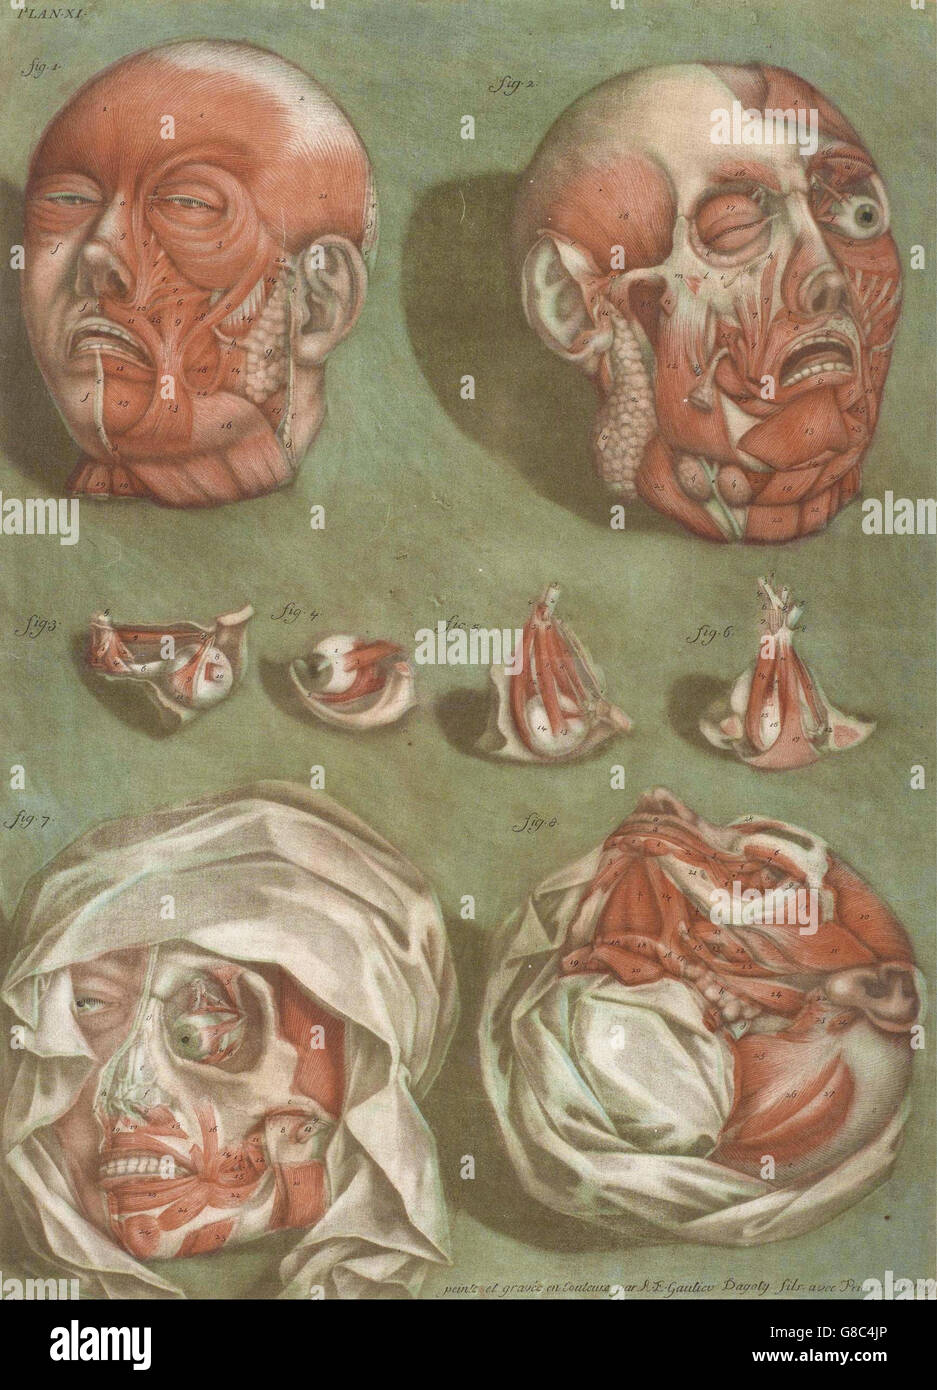 Arnaud-Éloi Gautier-Dagoty - Plate 11, Studies of Heads and Eyes - Stock Image